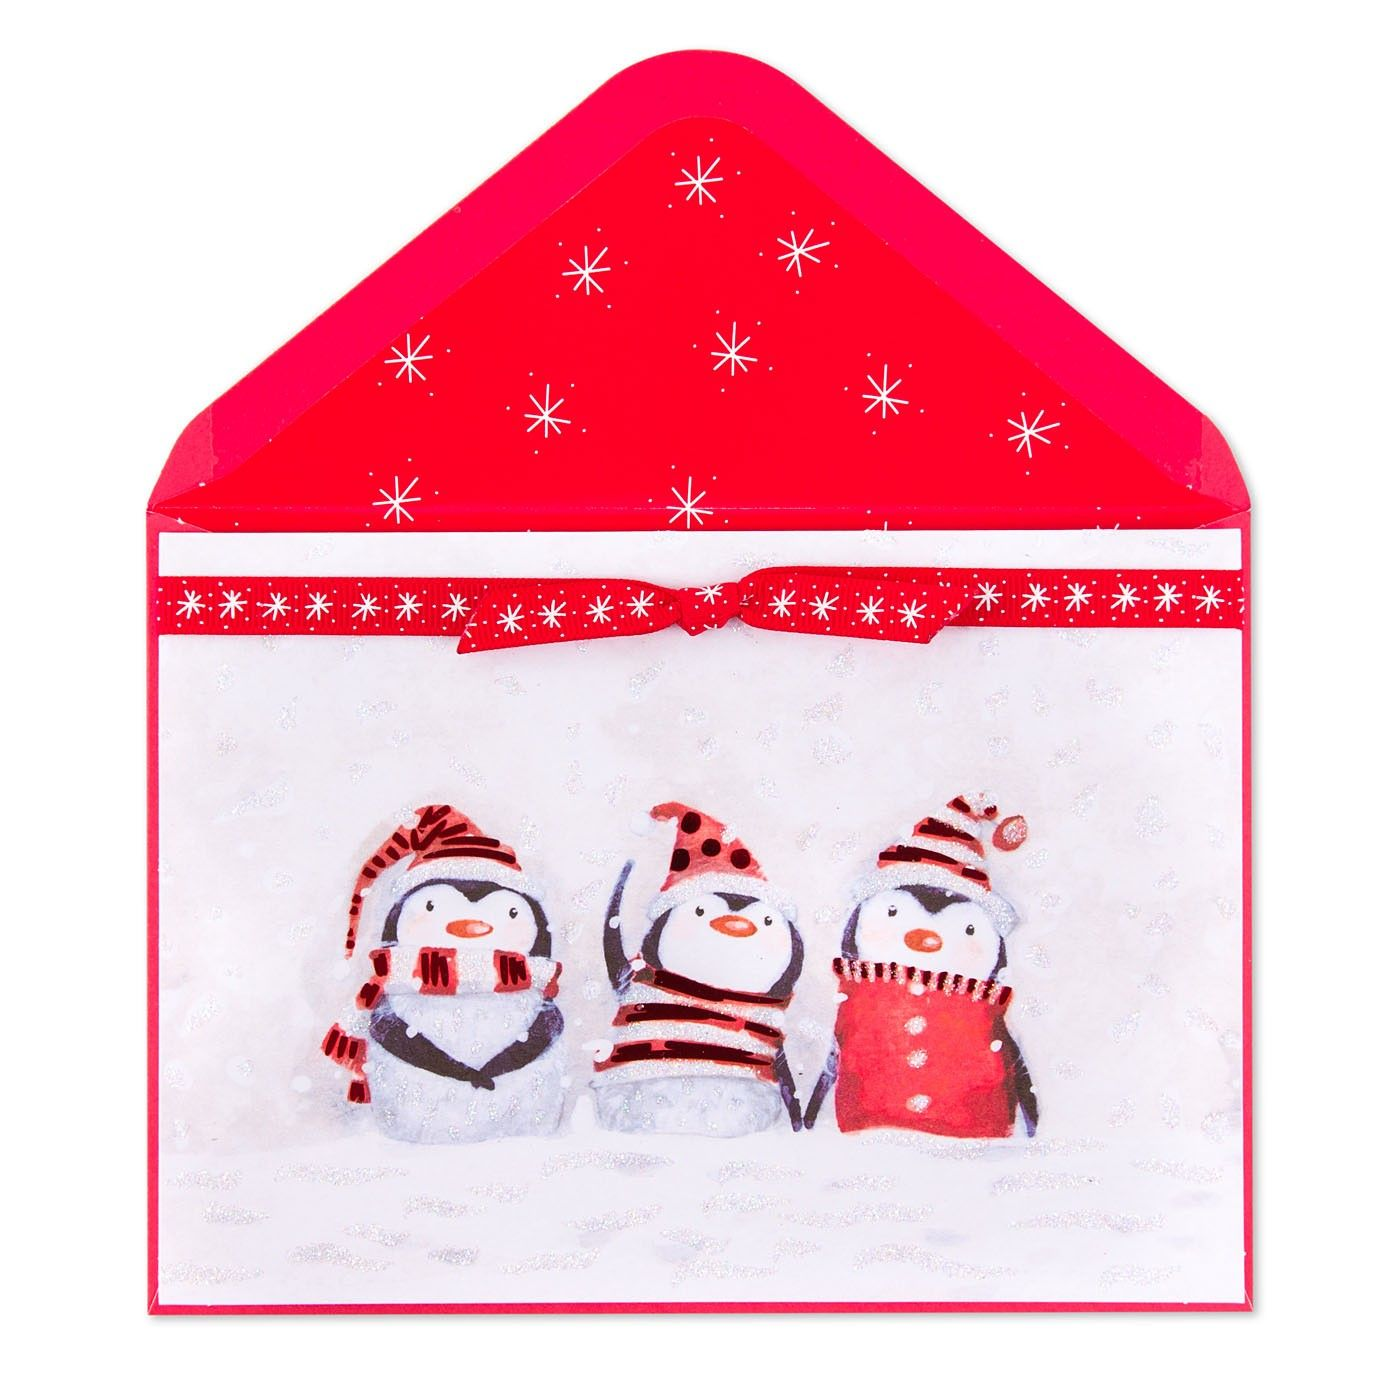 Wish them a merry Christmas with this adorable card featuring three penguins wearing Santa hats, sweaters, and a scarf.